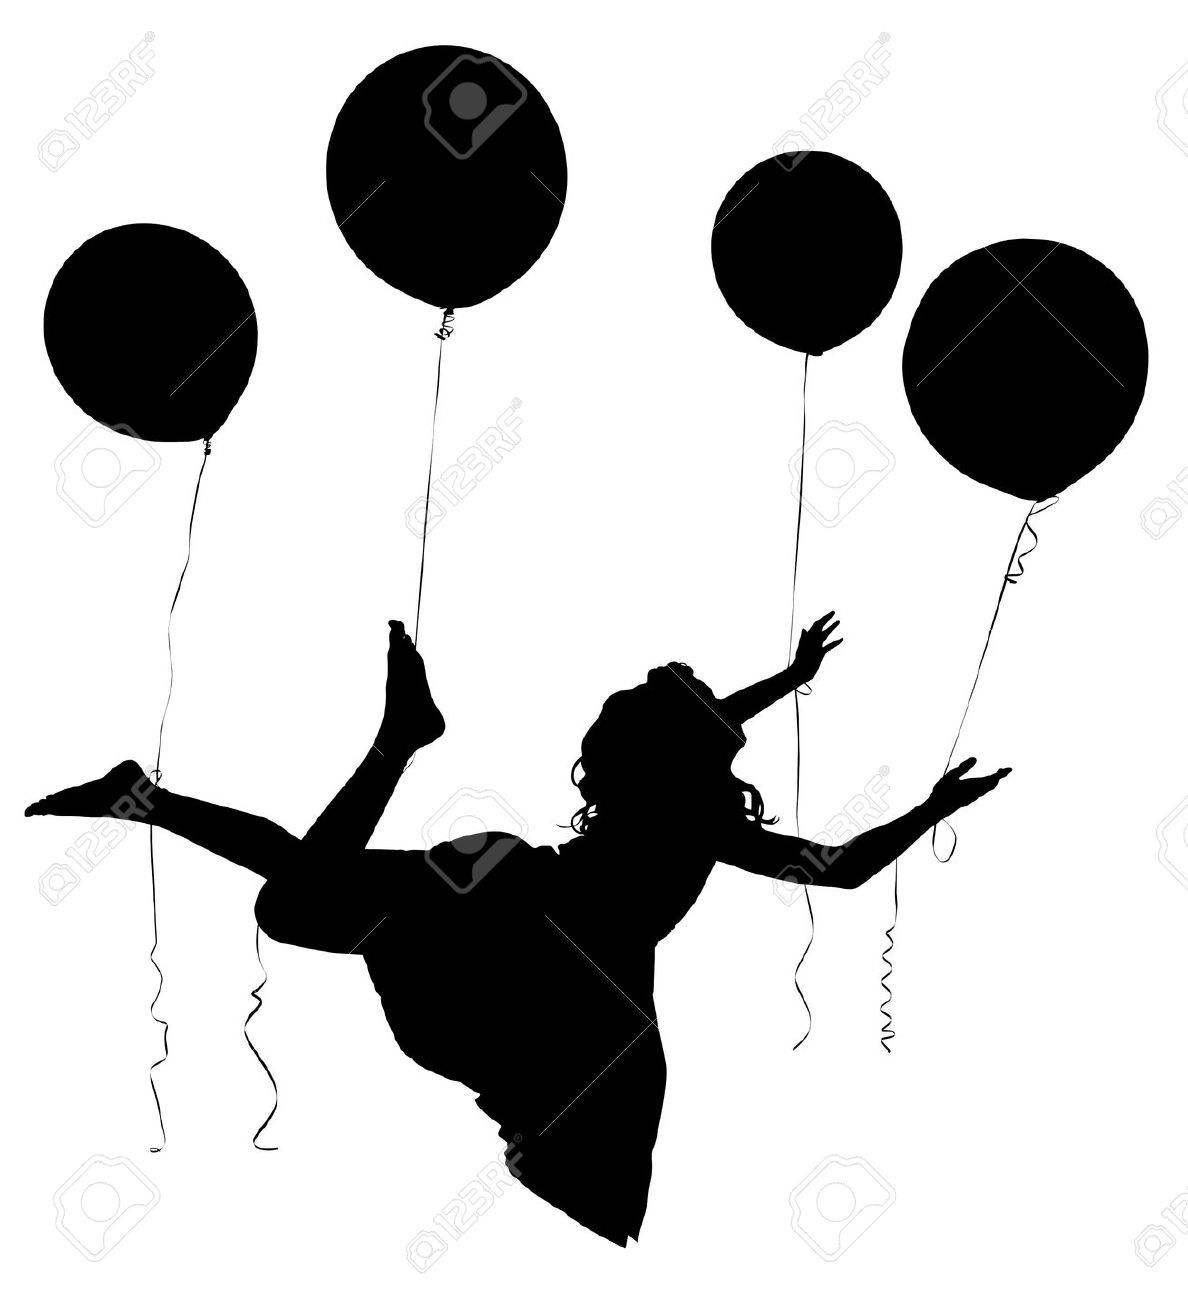 girl holding balloons silhouette woman holding balloon png free silhouette girl holding balloons